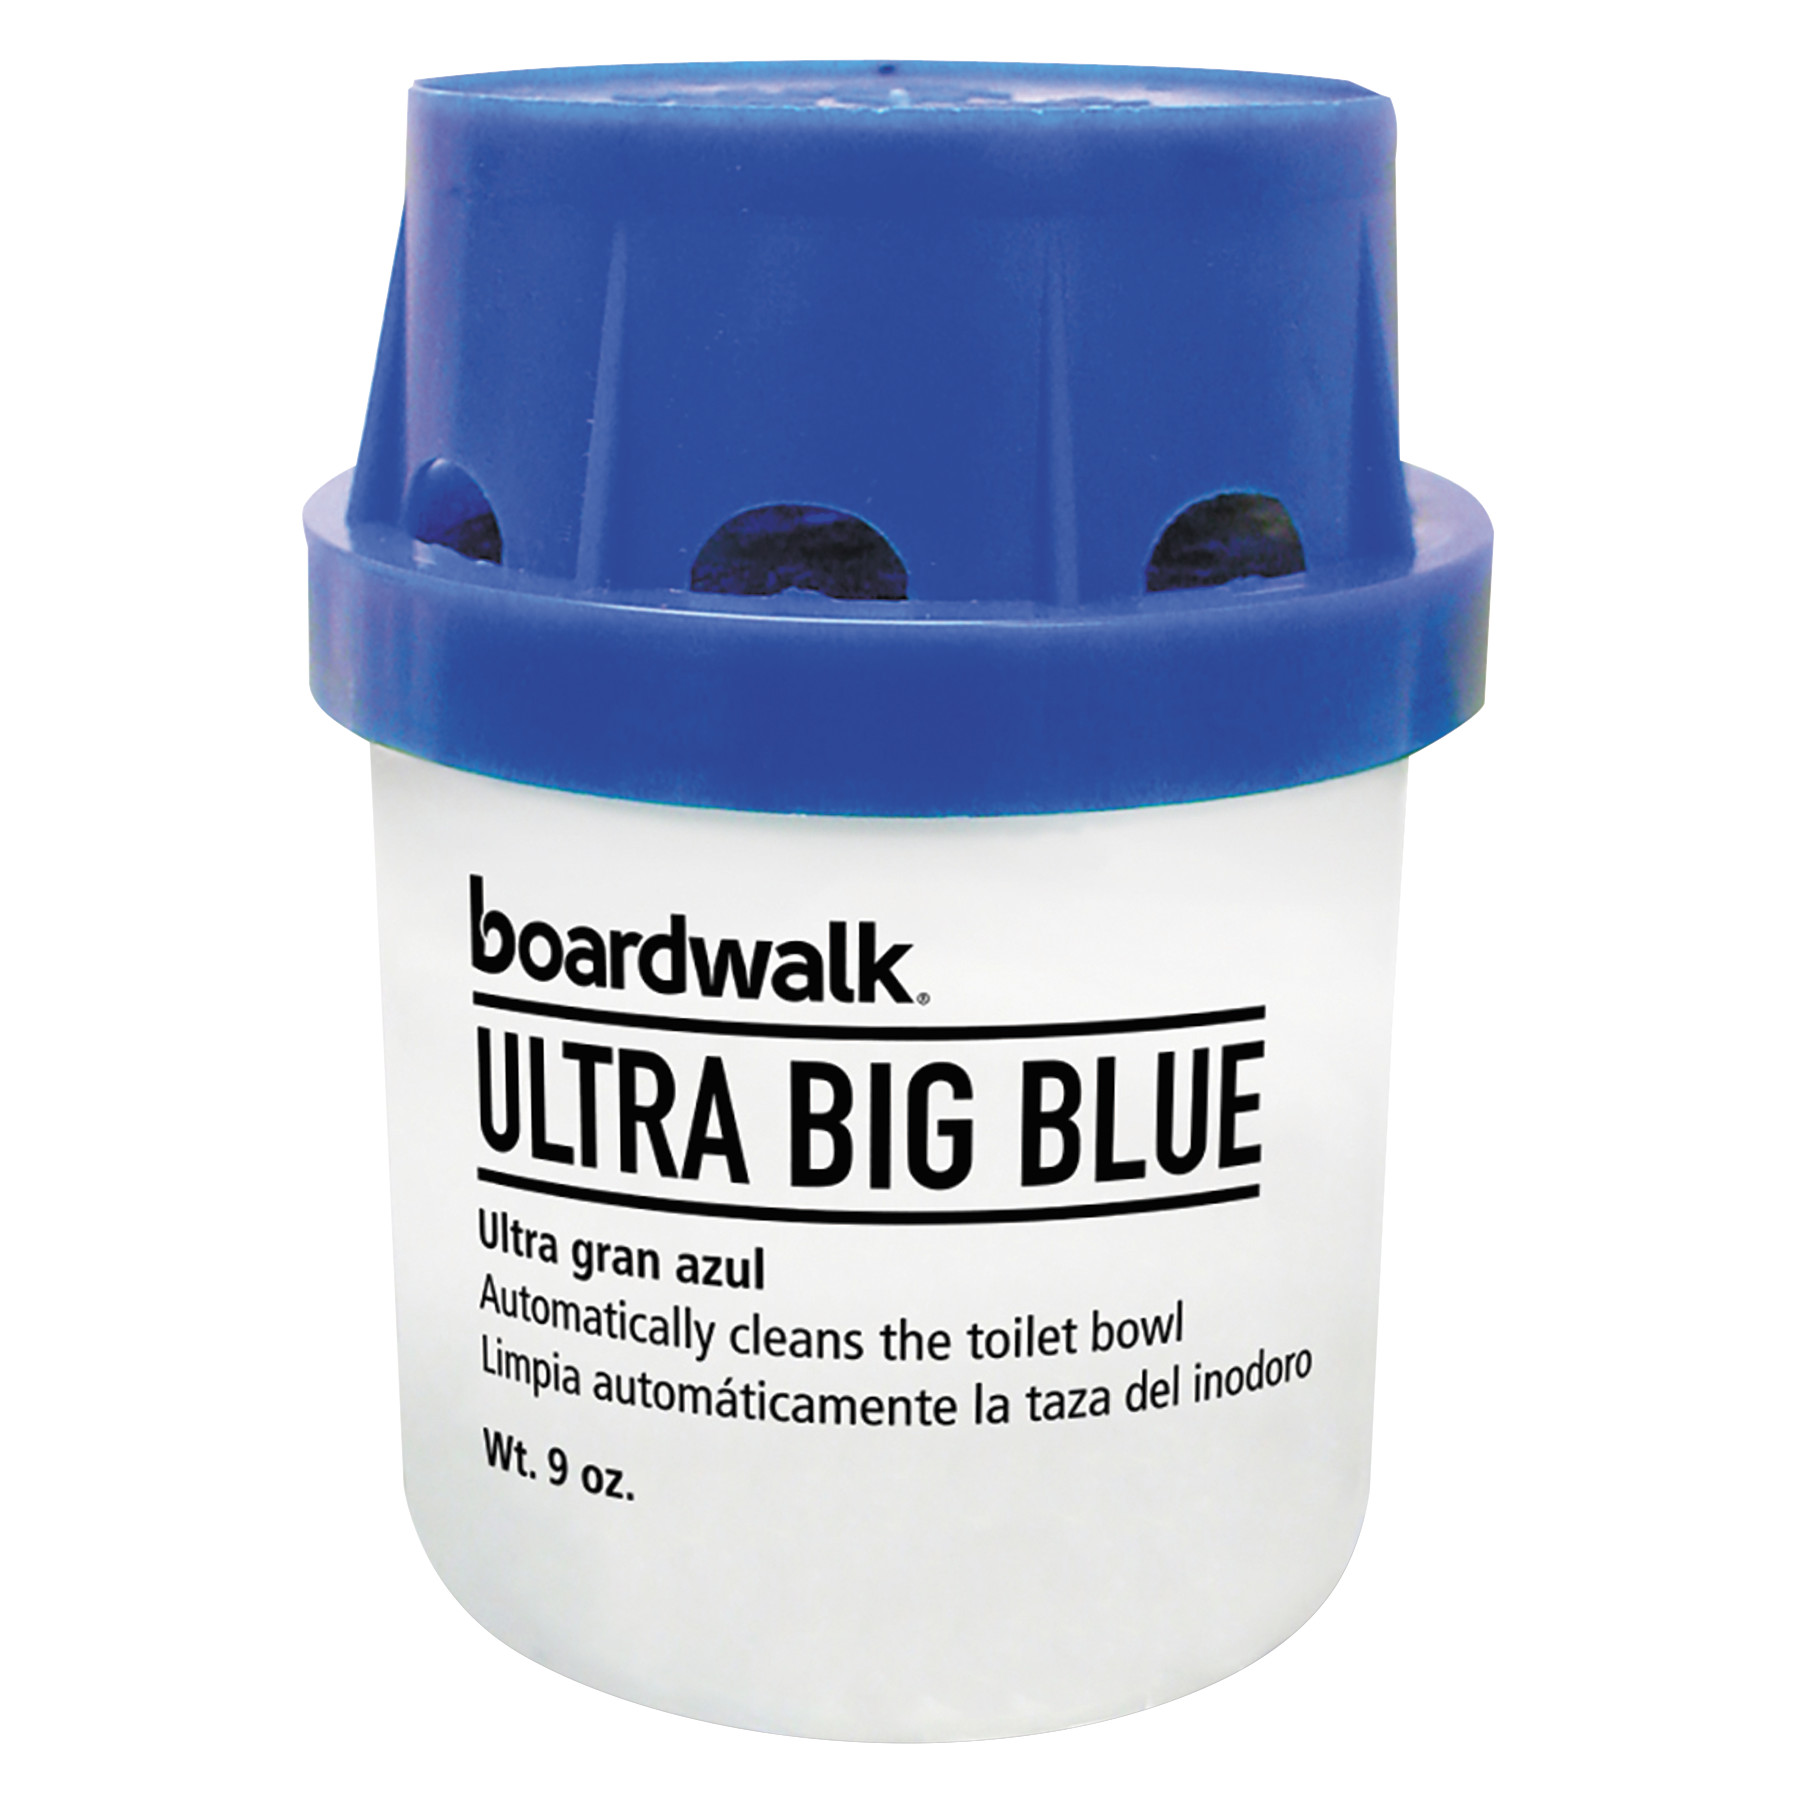 Boardwalk Automatic Toilet Bowl Cleaner, 9 oz, 48 count